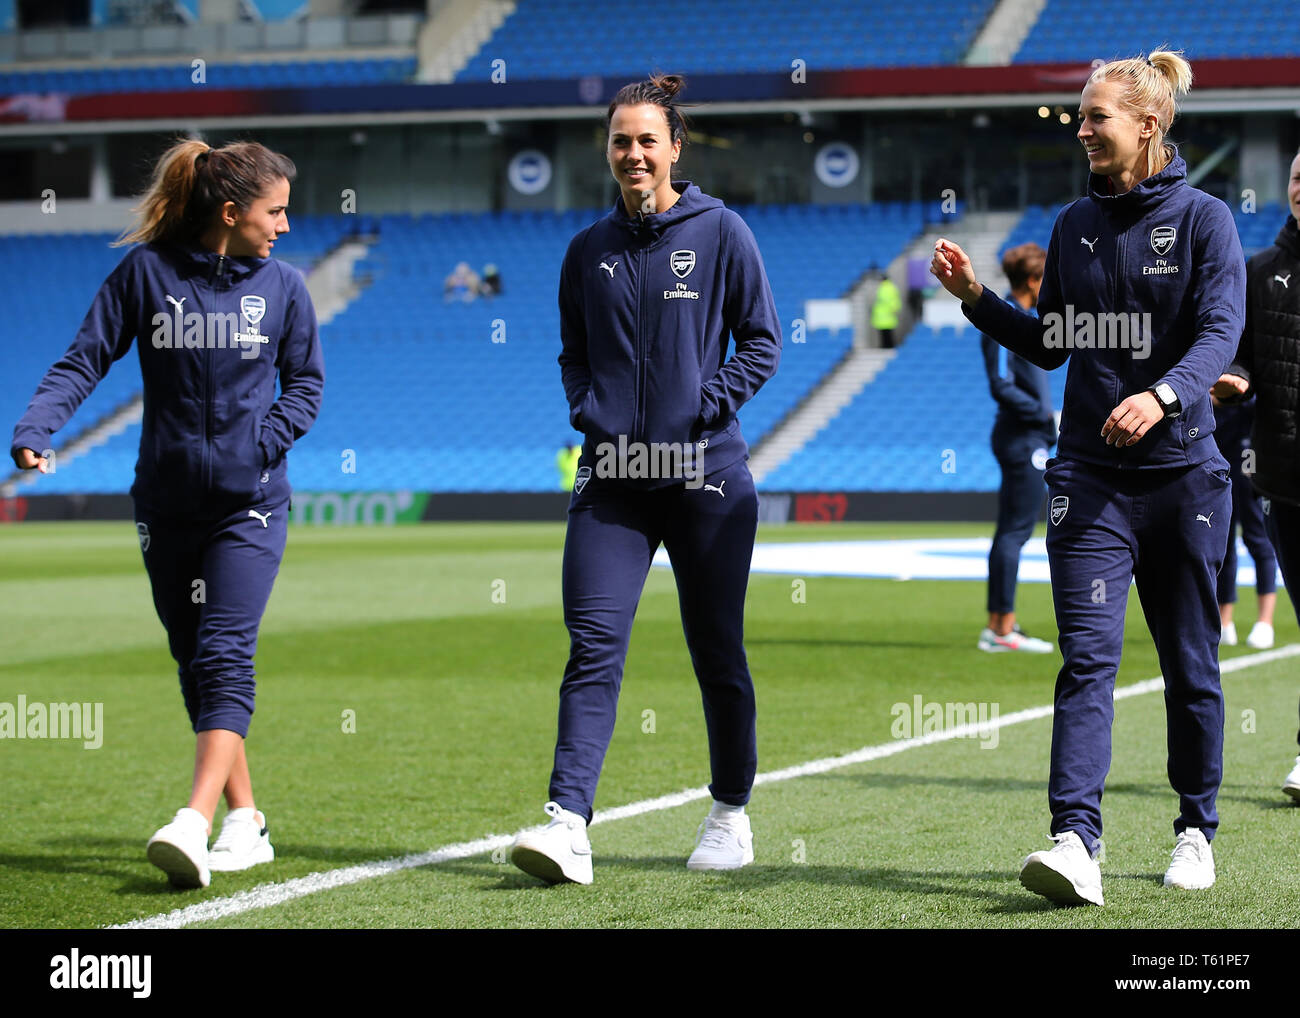 Members of the Arsenal Women's team inspect the pitch before kick off during the FA Women's Super League match at the AMEX Stadium, Brighton. - Stock Image